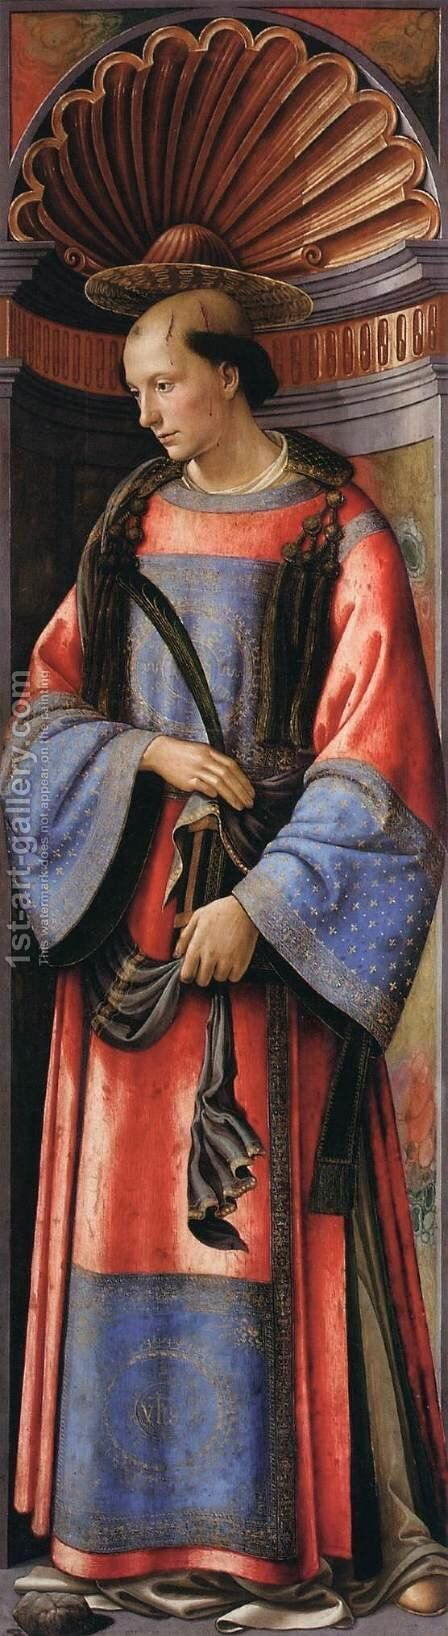 St Stephen 1490-94 by Domenico Ghirlandaio - Reproduction Oil Painting